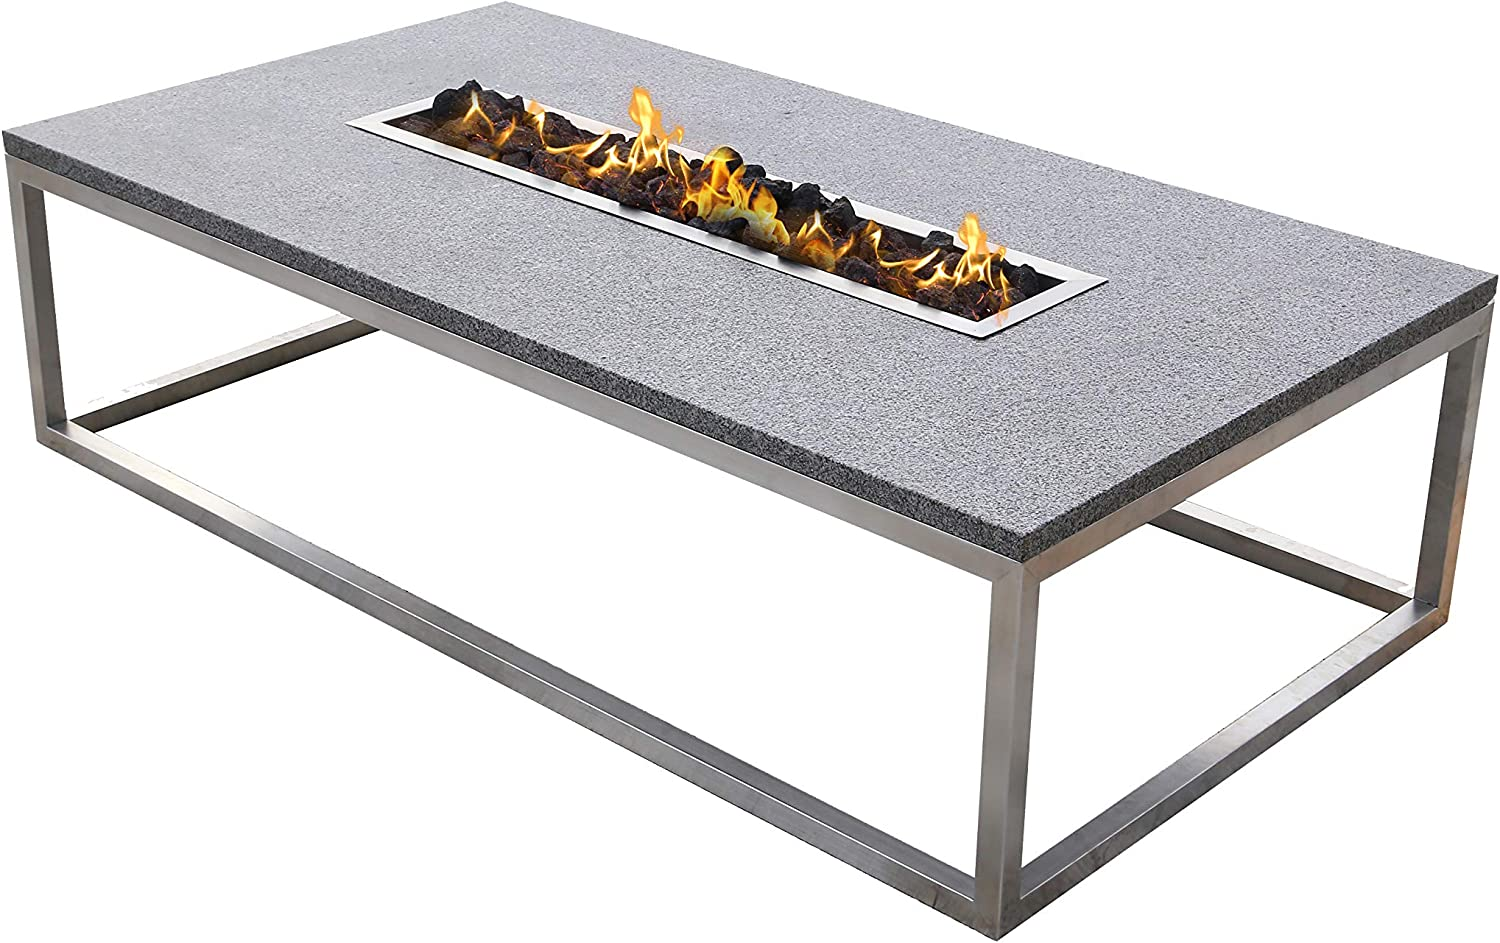 B07JP9LF5J Stone Age Creations Stainless Steel Granite Fire Pit, Rectangular 81BVQ6IEhKL